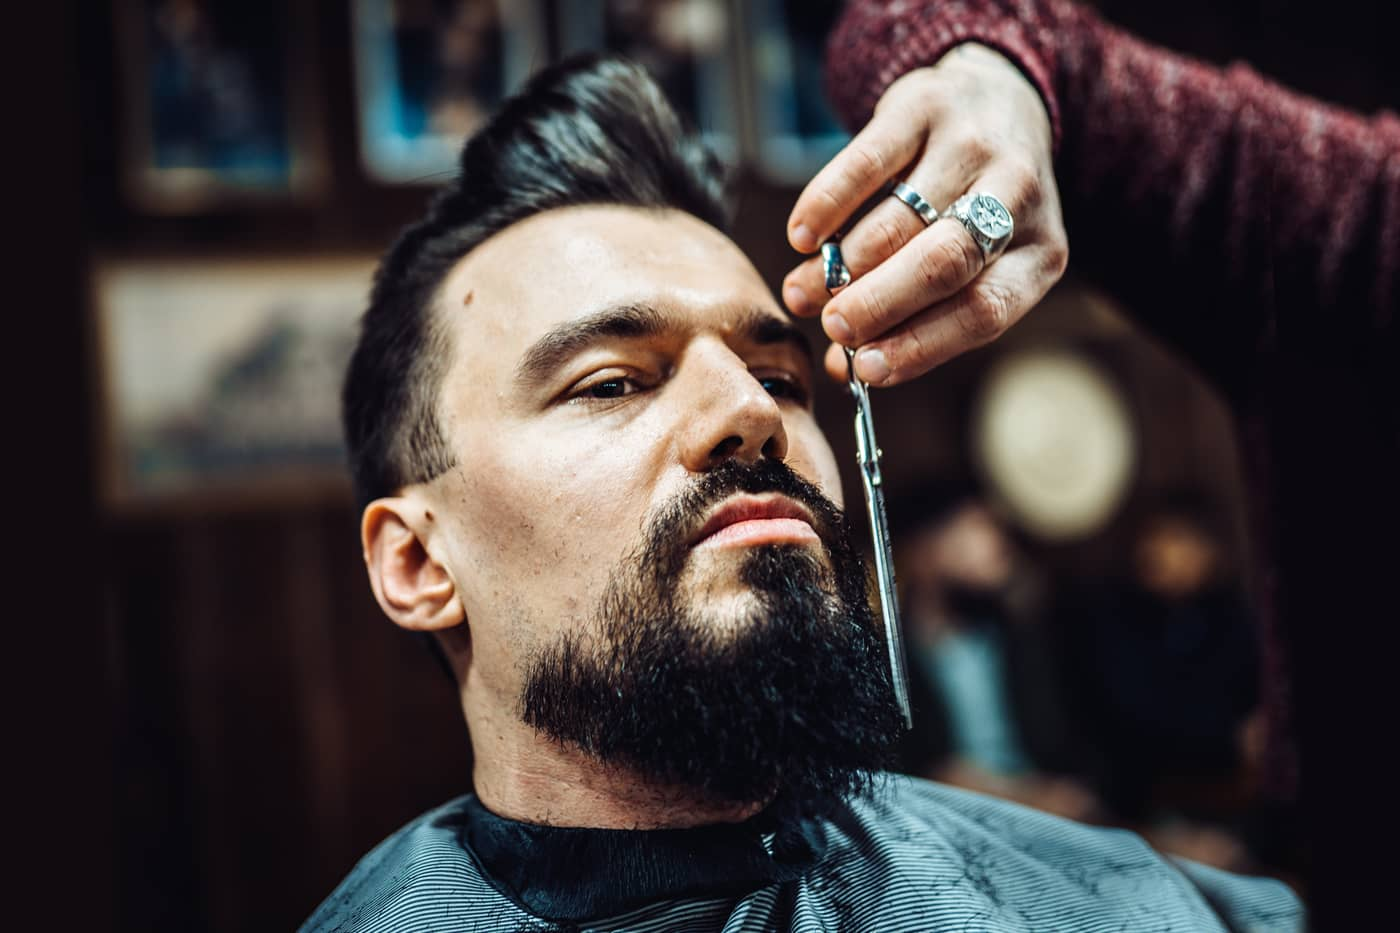 Learn how to trim a beard in our workshop